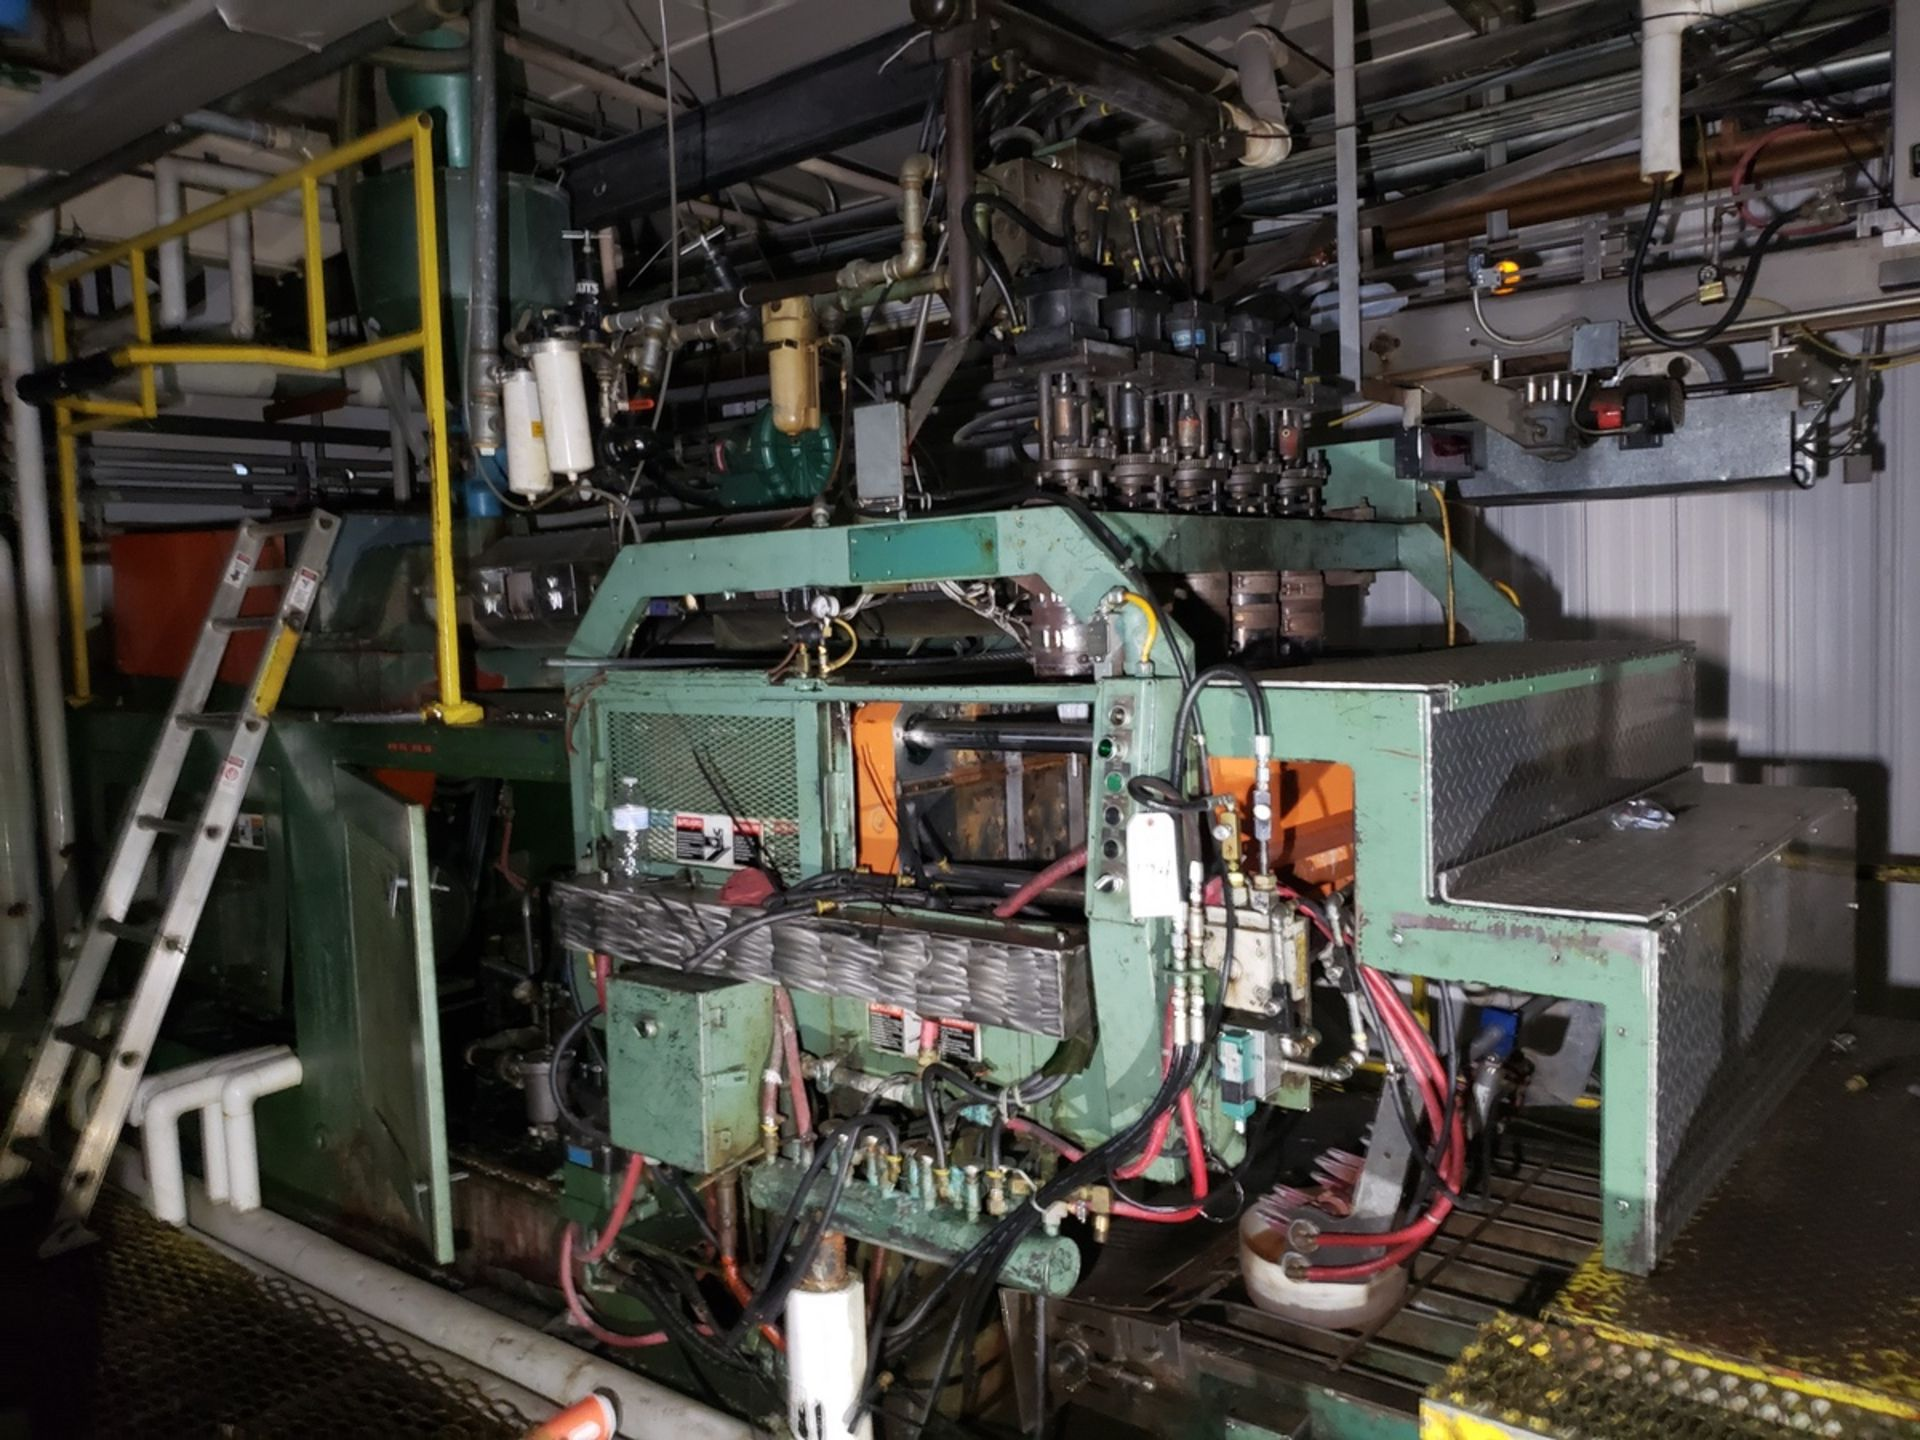 Uniloy 5 Head Blow Molding Machine, M# 350R1, S/N 350R1-2431 | Rig Fee: $14500